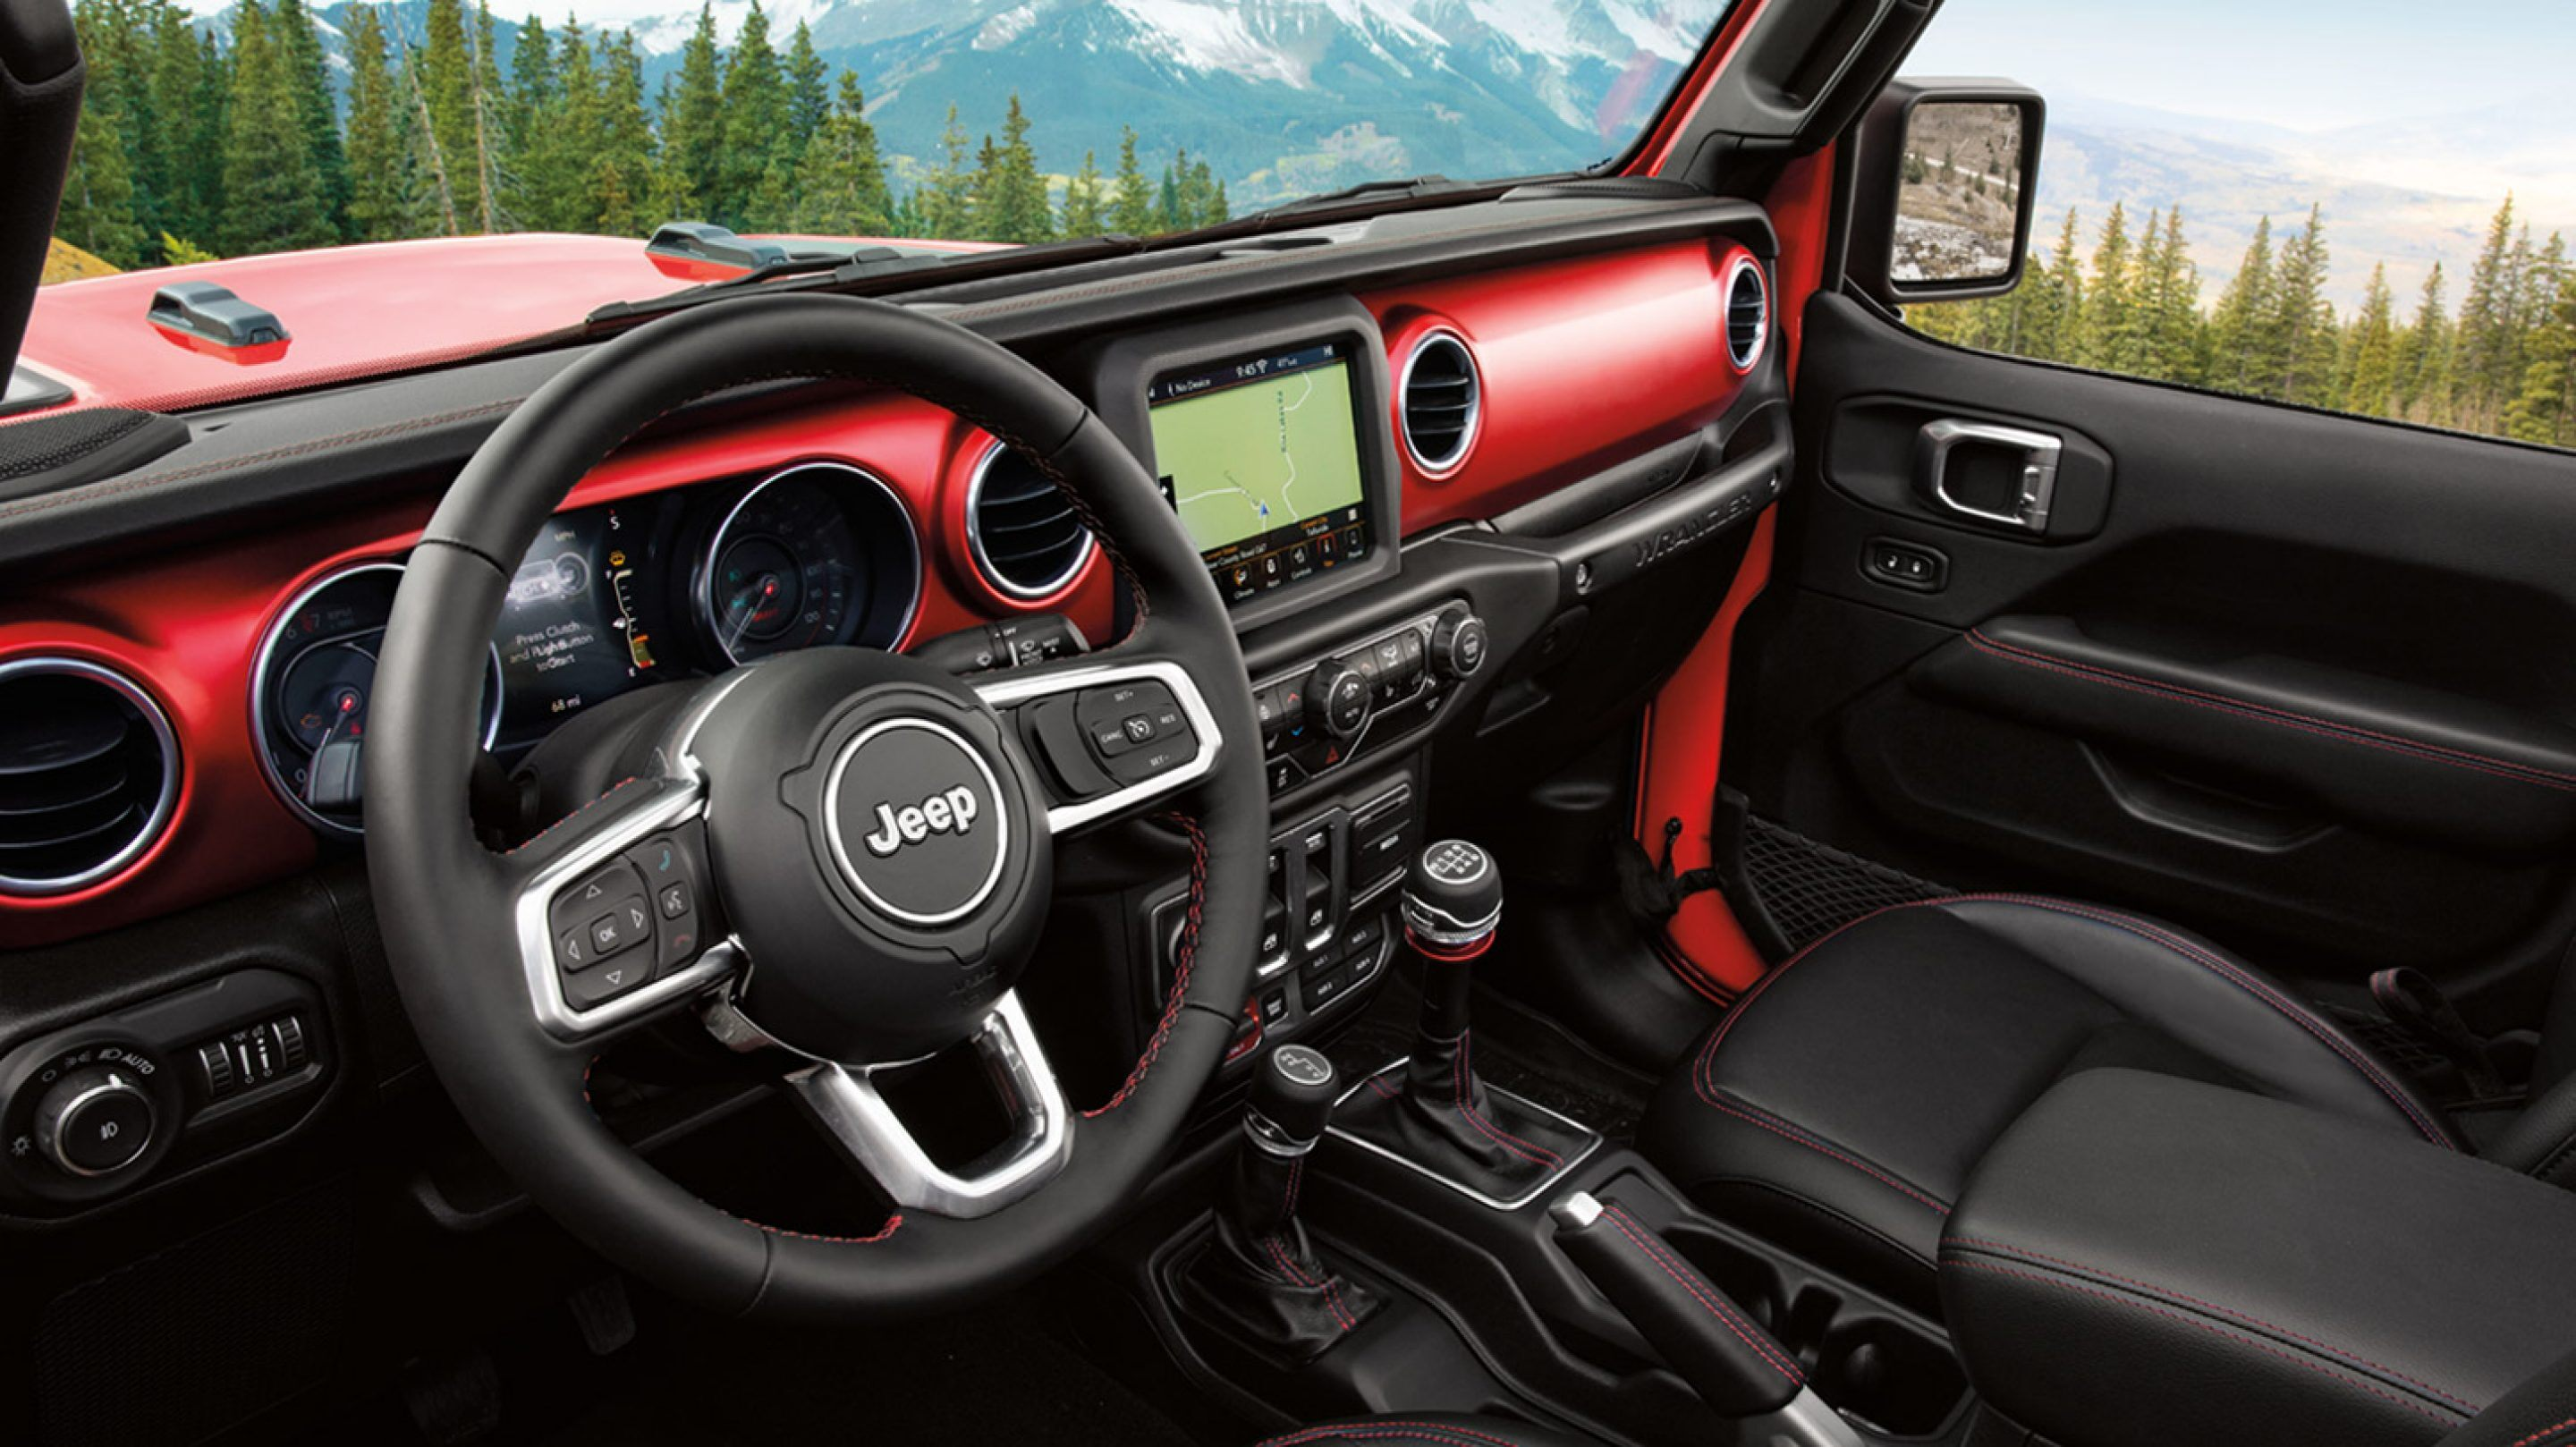 interior of a red 2020 jeep wrangler parked on a mountaintop